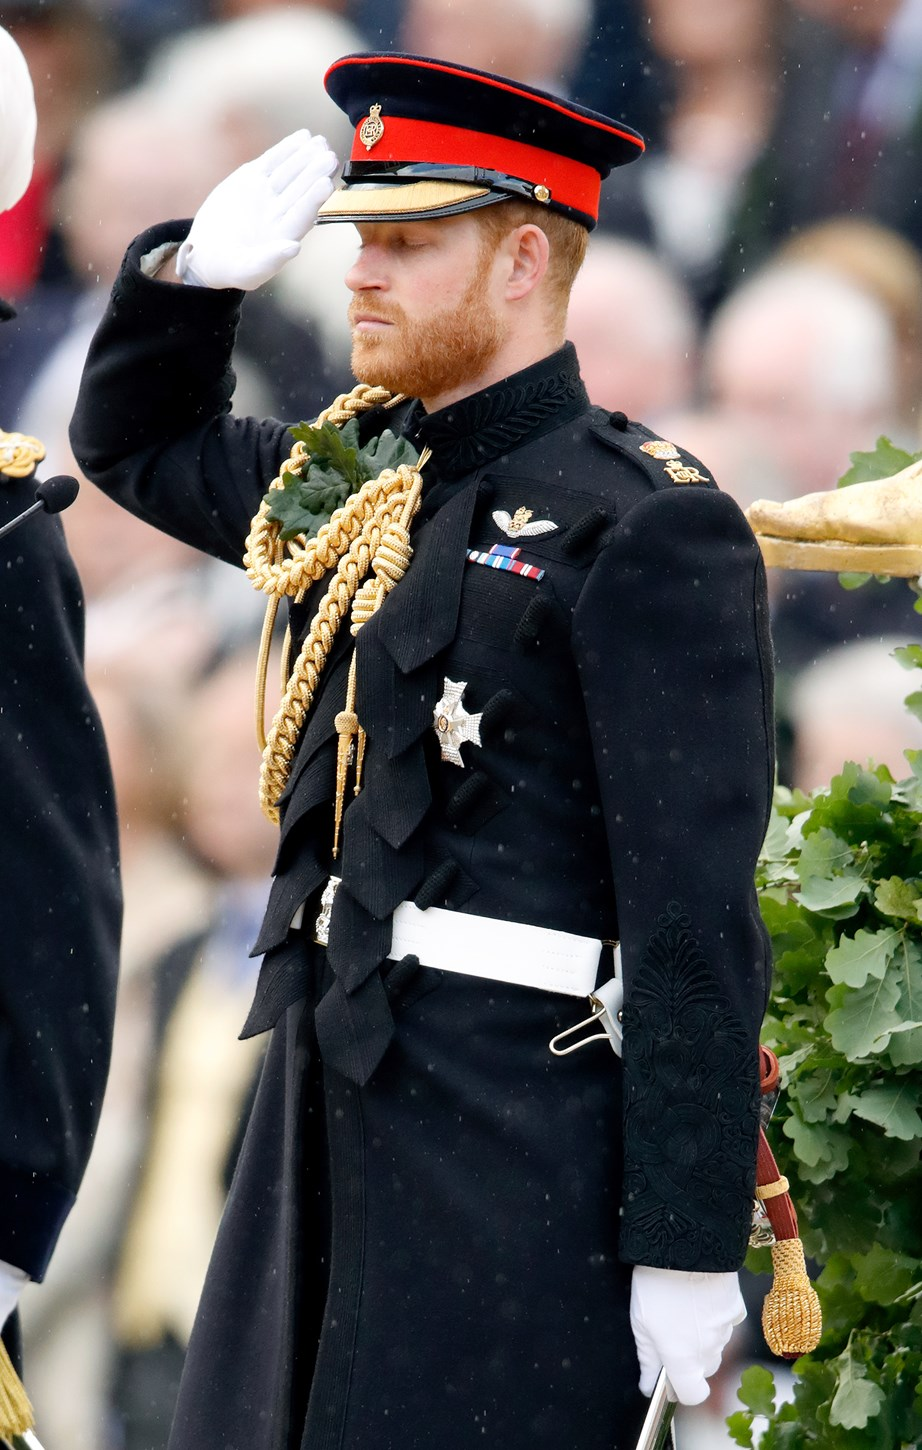 While he has now retired from the military, Harry still has a strong connection, co-founding the Invictus Games and attends many military engagements in his honourary roles as Captain General of the Royal Marines, Lieutenant Commander of the Royal Navy, Major of the British Army and Squadron Leader of the Royal Air Force. *(Image: Getty)*